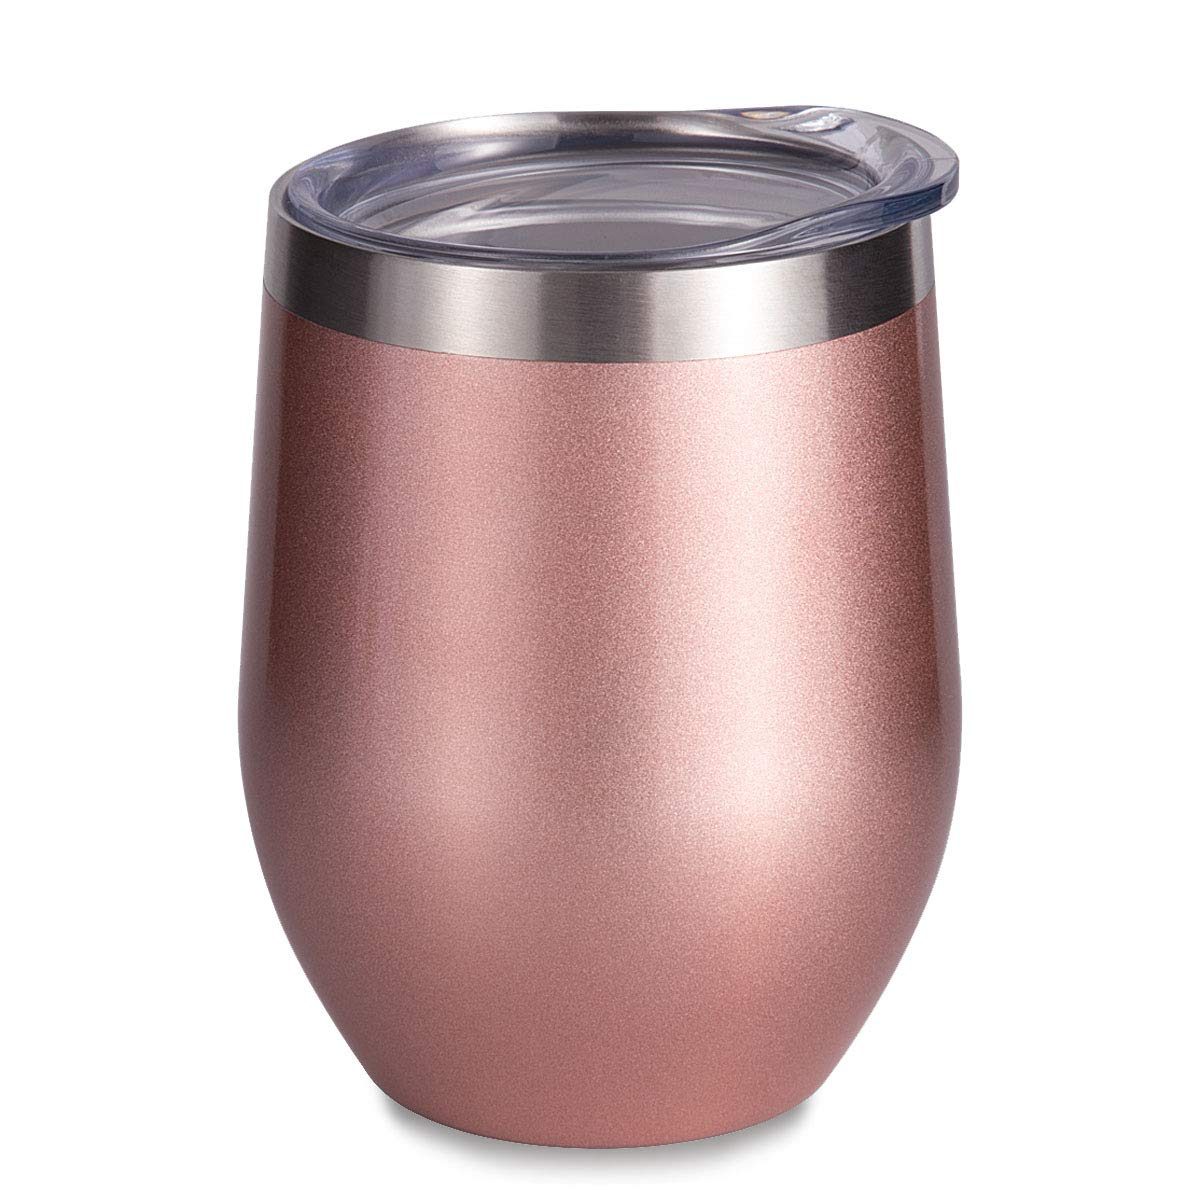 Vacuum Insulated Wine Tumbler with Lid Rose Gold, Double Wall Stainless Steel Stemless Insulated Wine Glass, Durable Insulated Coffee Mug, for Champaign, Cocktail, Beer, Office, 12oz by UPSTAR